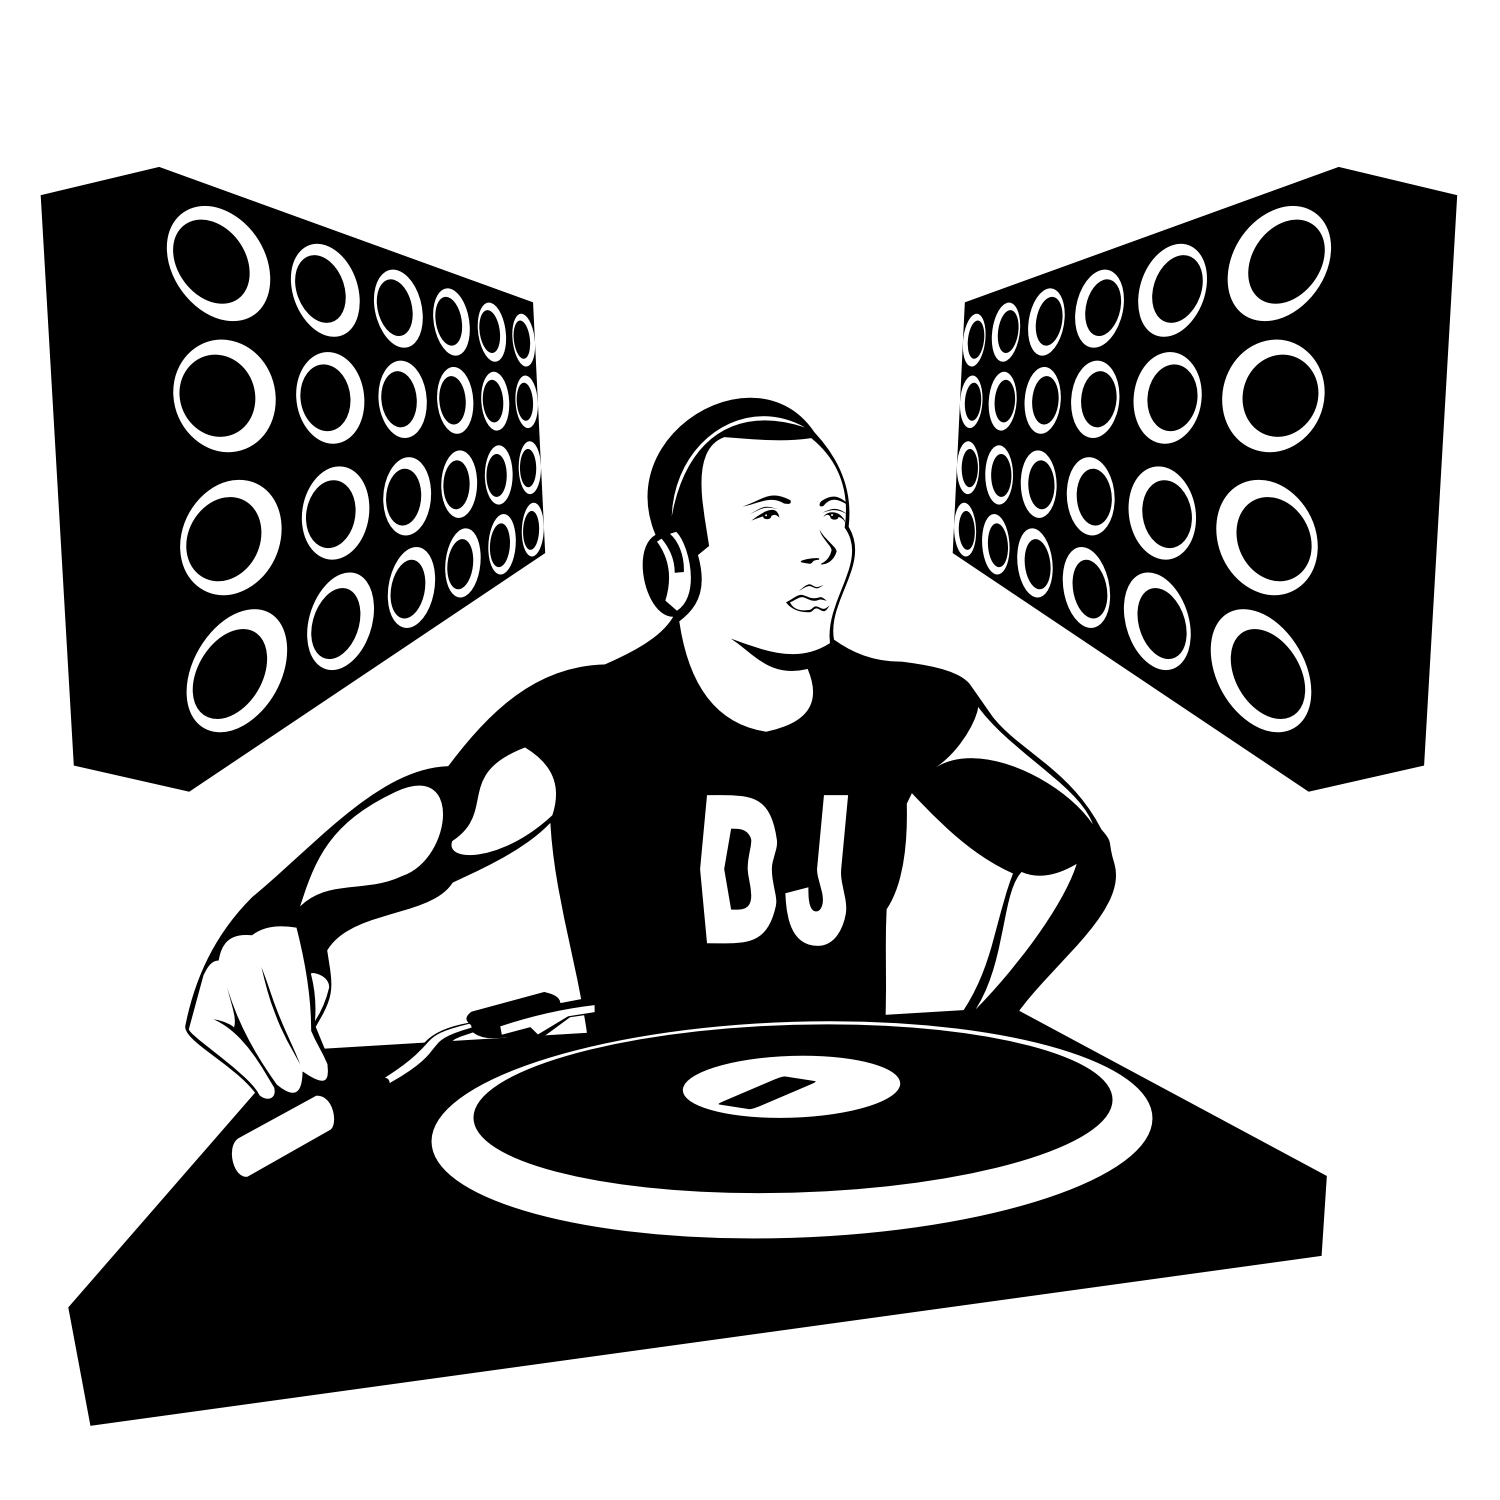 Vector Illustration Of A DJ Playing Music.